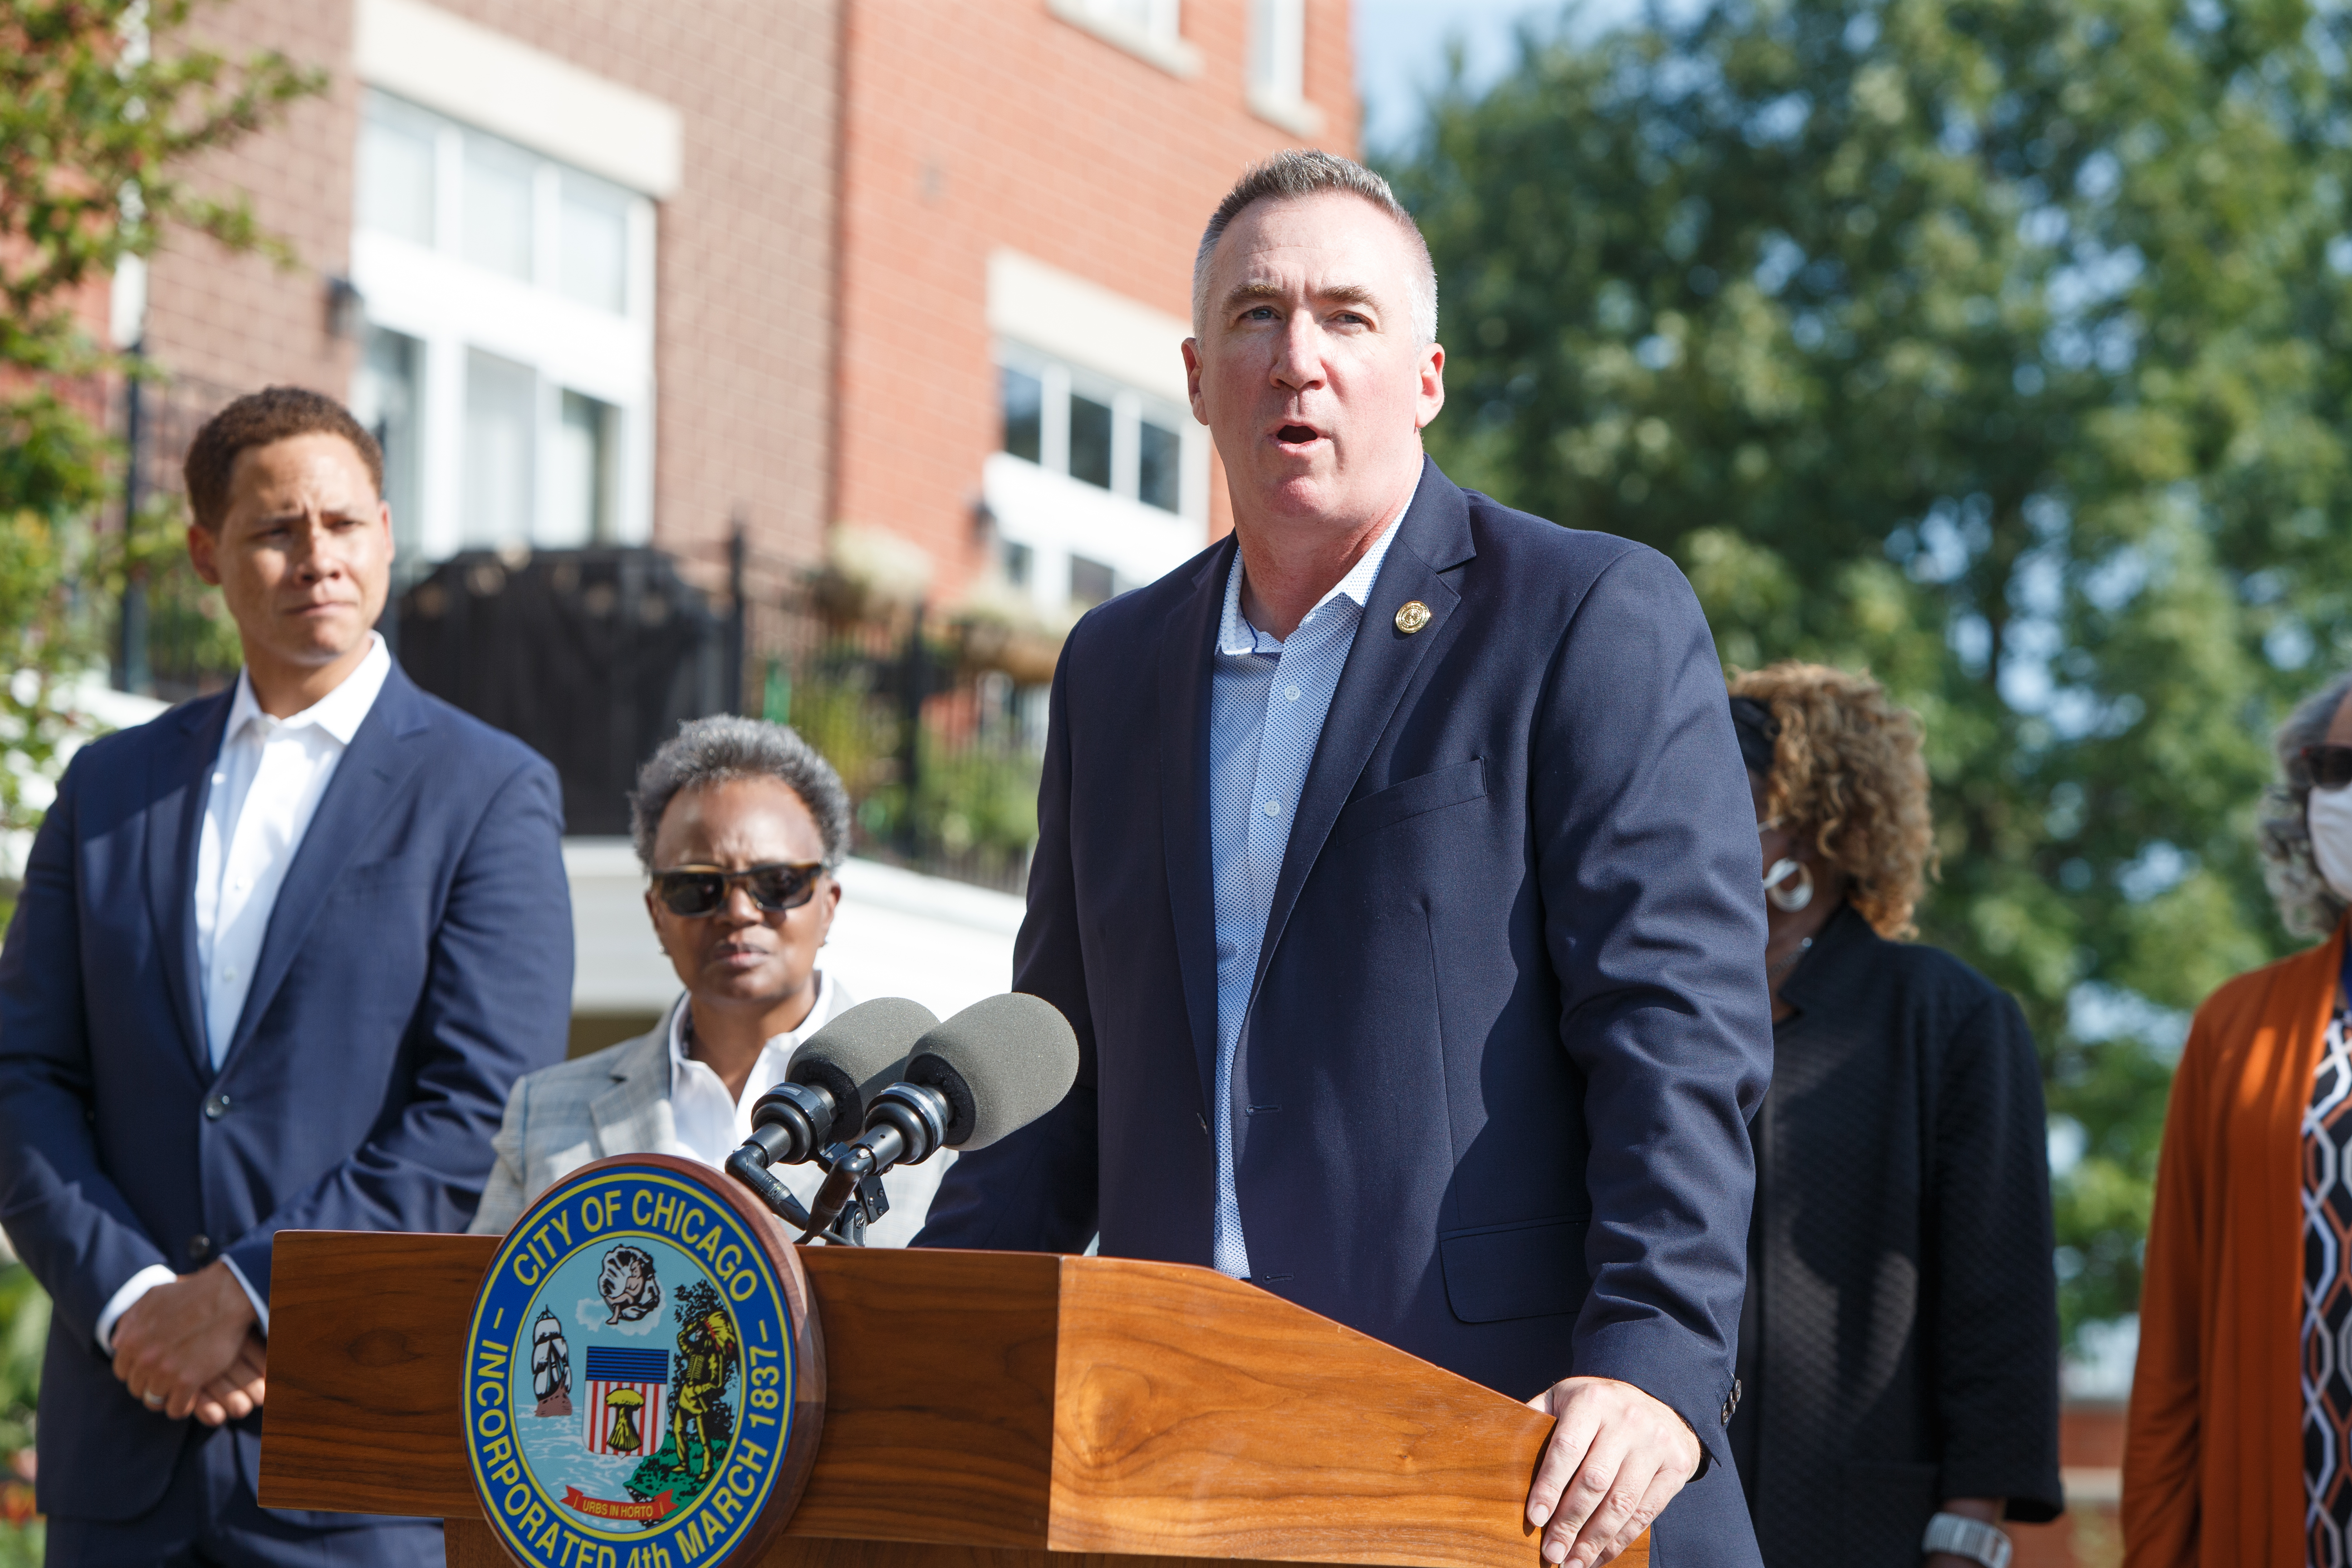 Michael Kelly, General Superintendent and CEO of the Chicago Parks District speaks at the ribbon cutting ceremony of the completion of the bridge replacement project at Irving Park Road in the North Center neighborhood, Friday morning, Sept. 10, 2021. Mark Capapas/Sun-Times